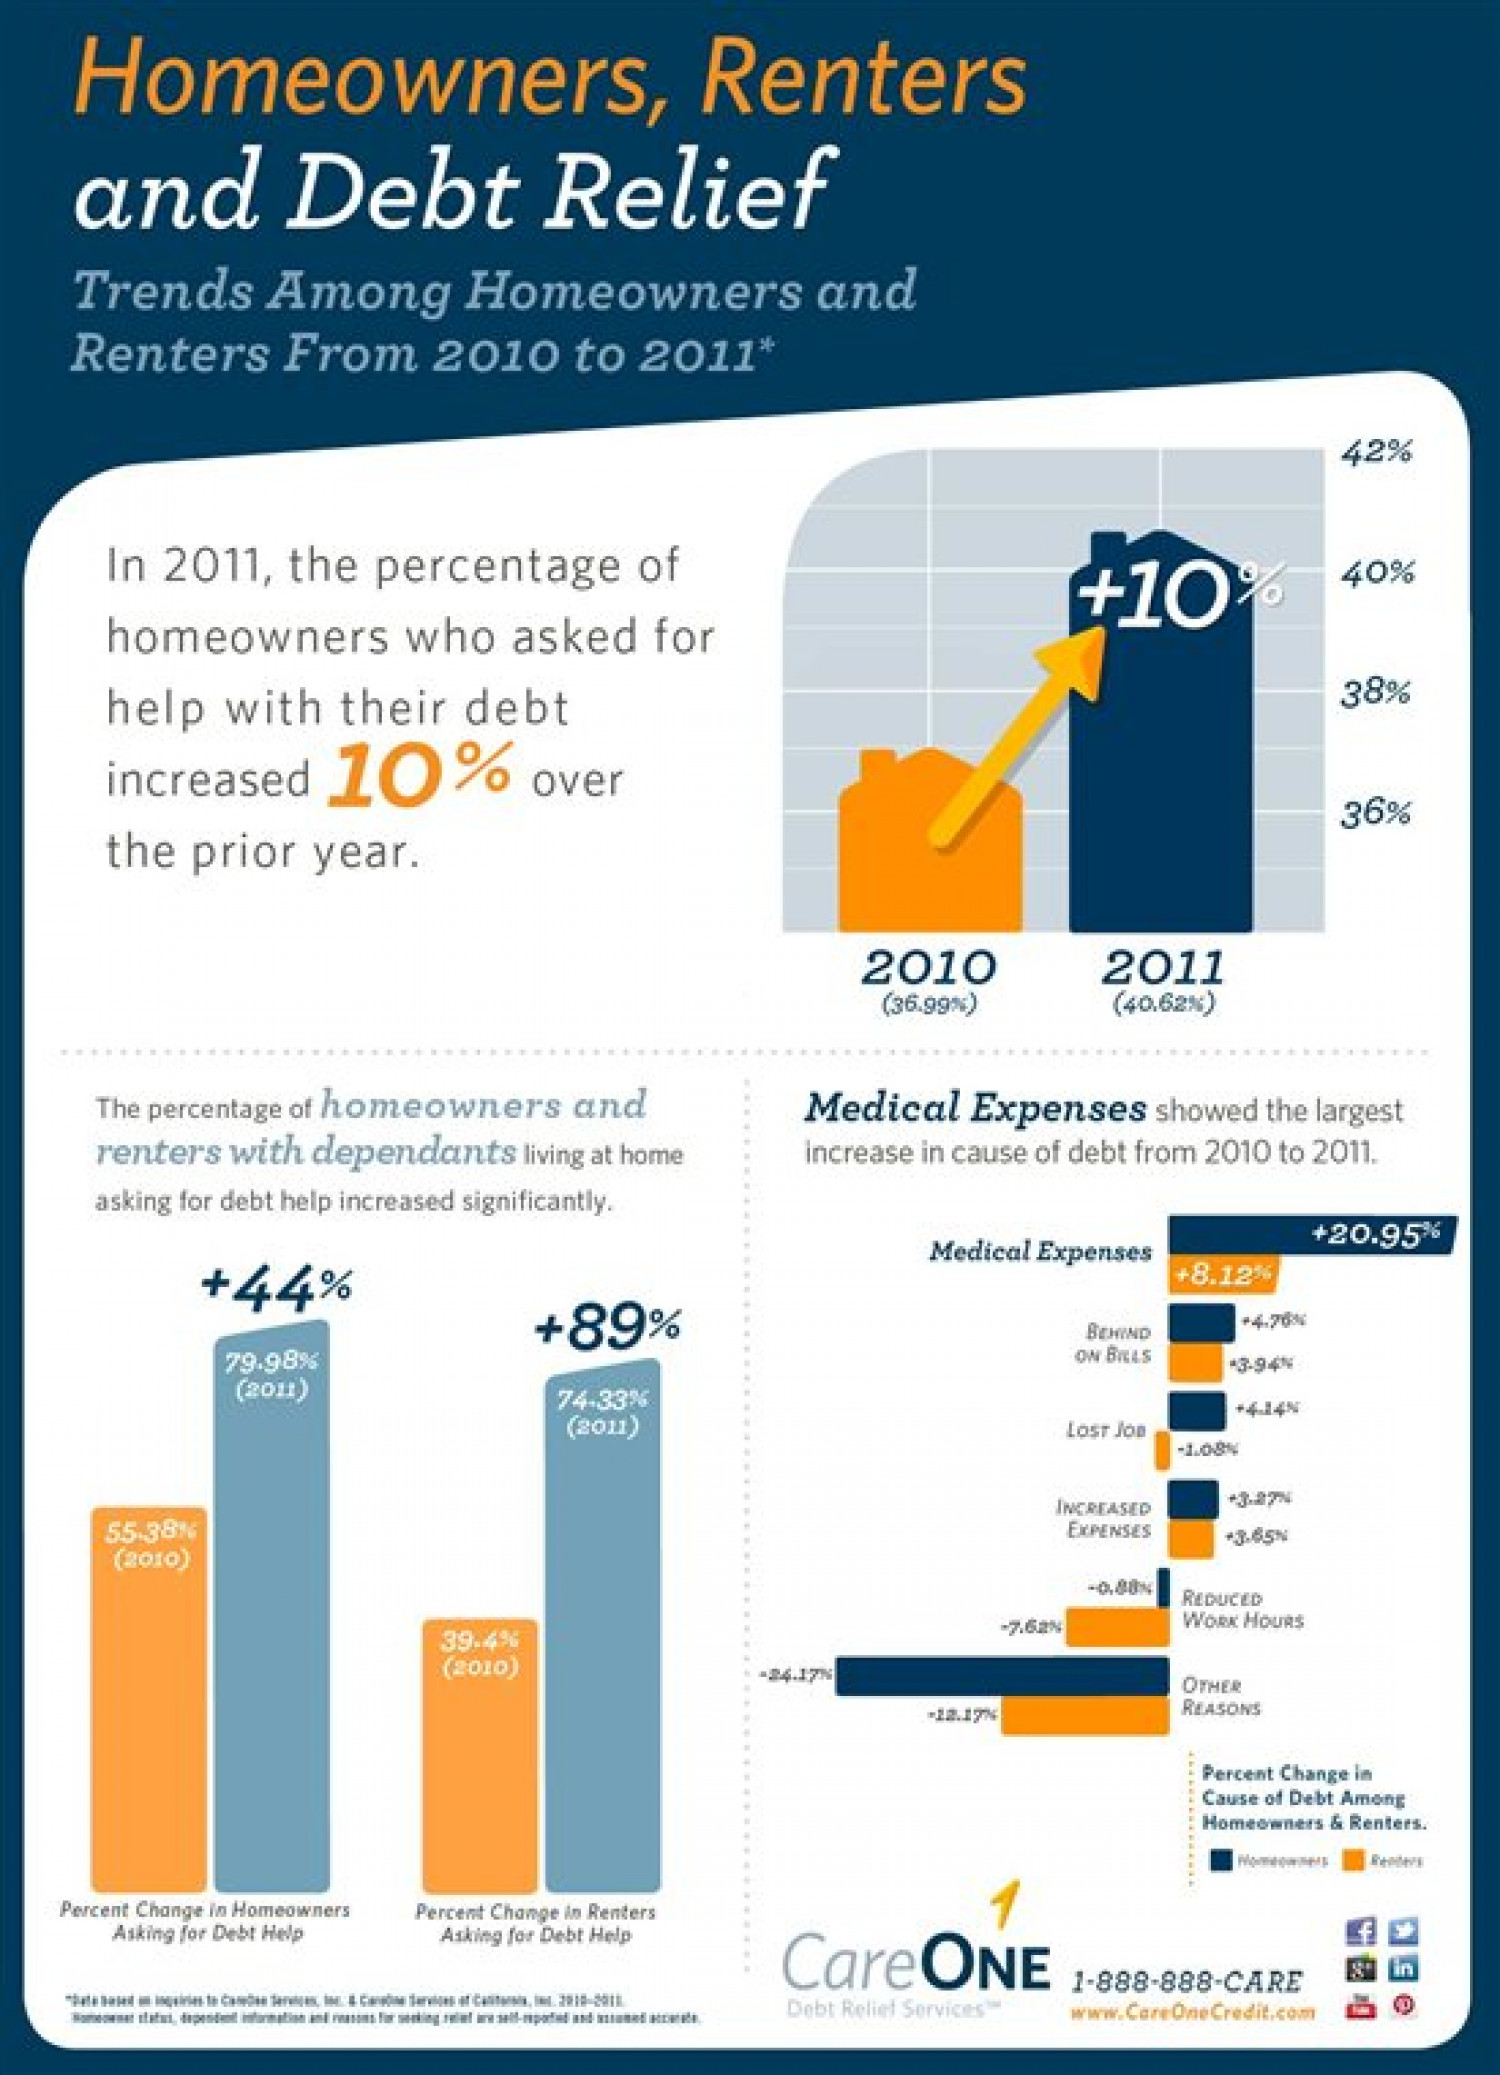 Homeowners, Renters and Debt Relief Infographic